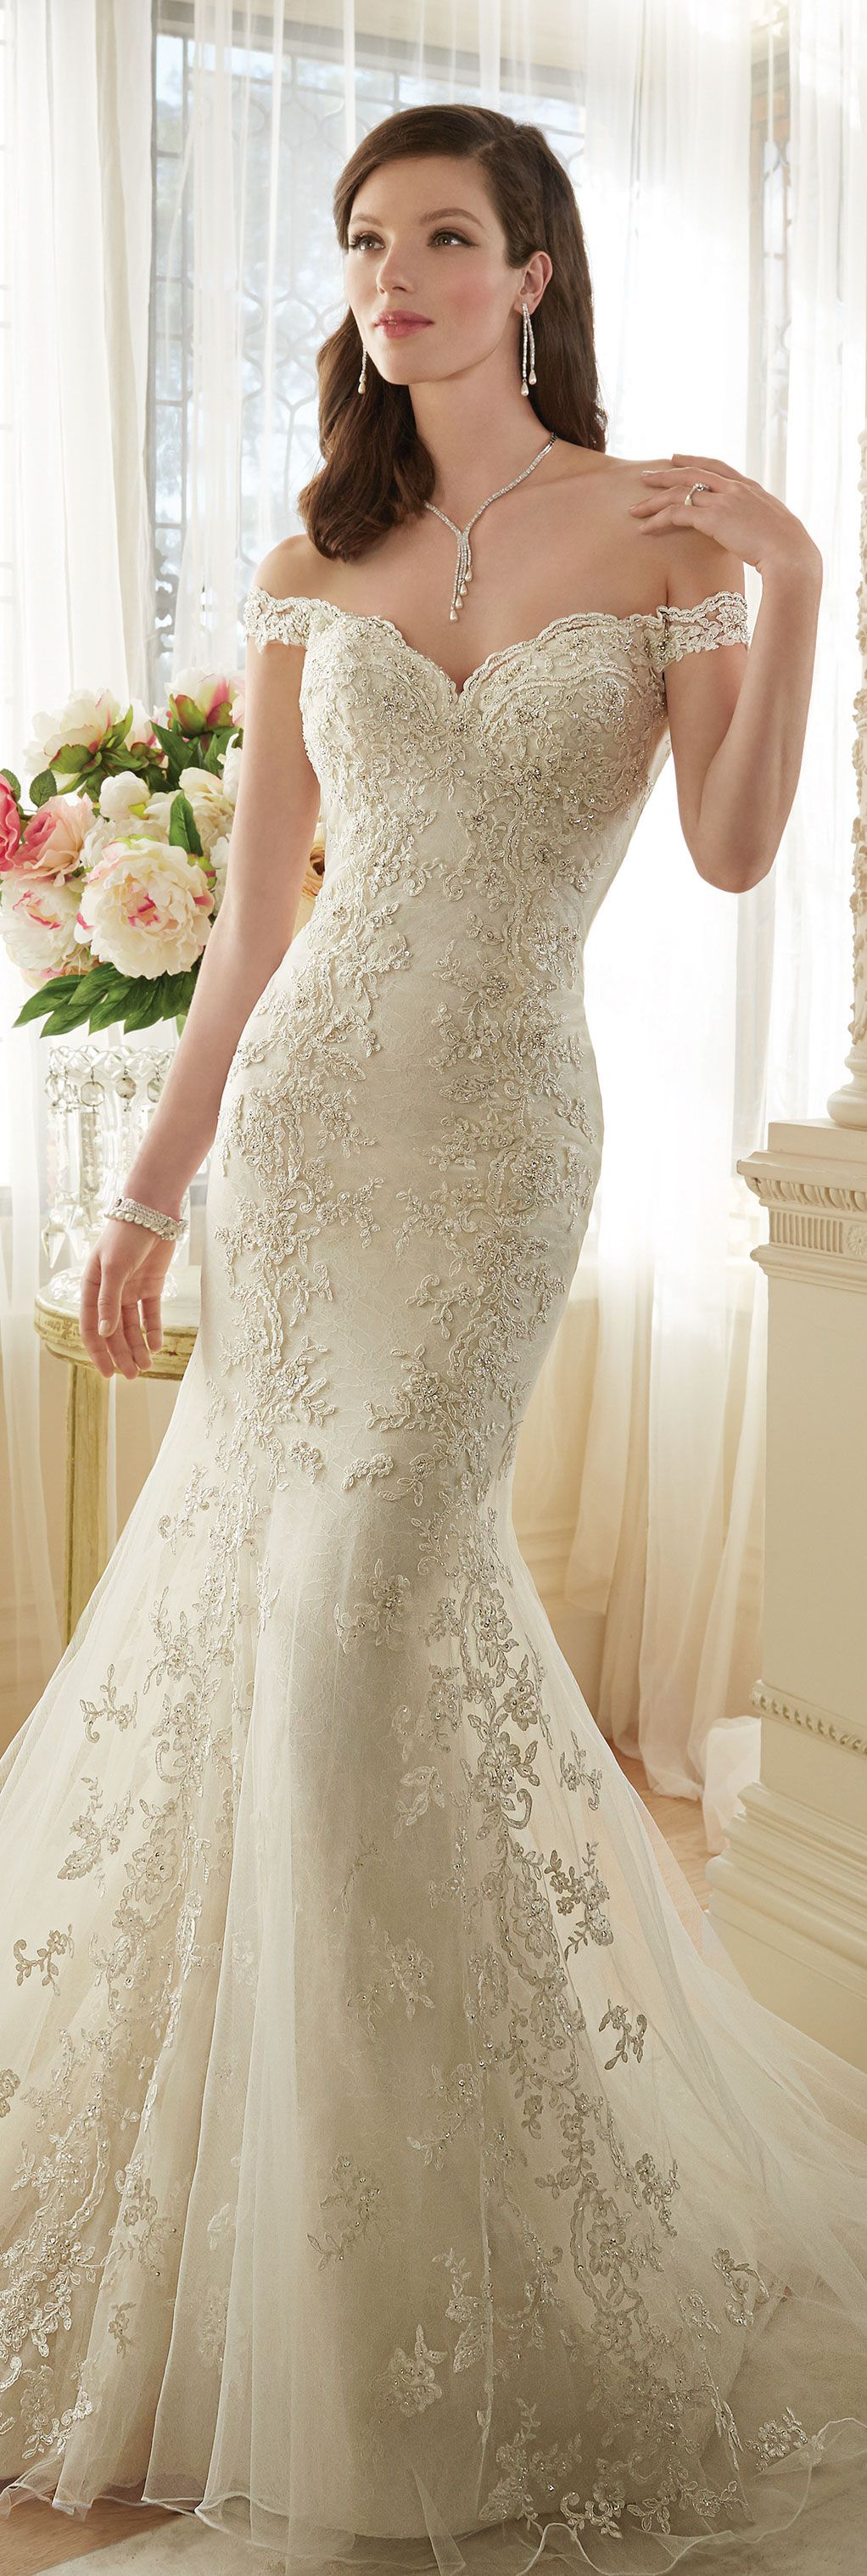 Y u loraina wedding dresses dress collection and